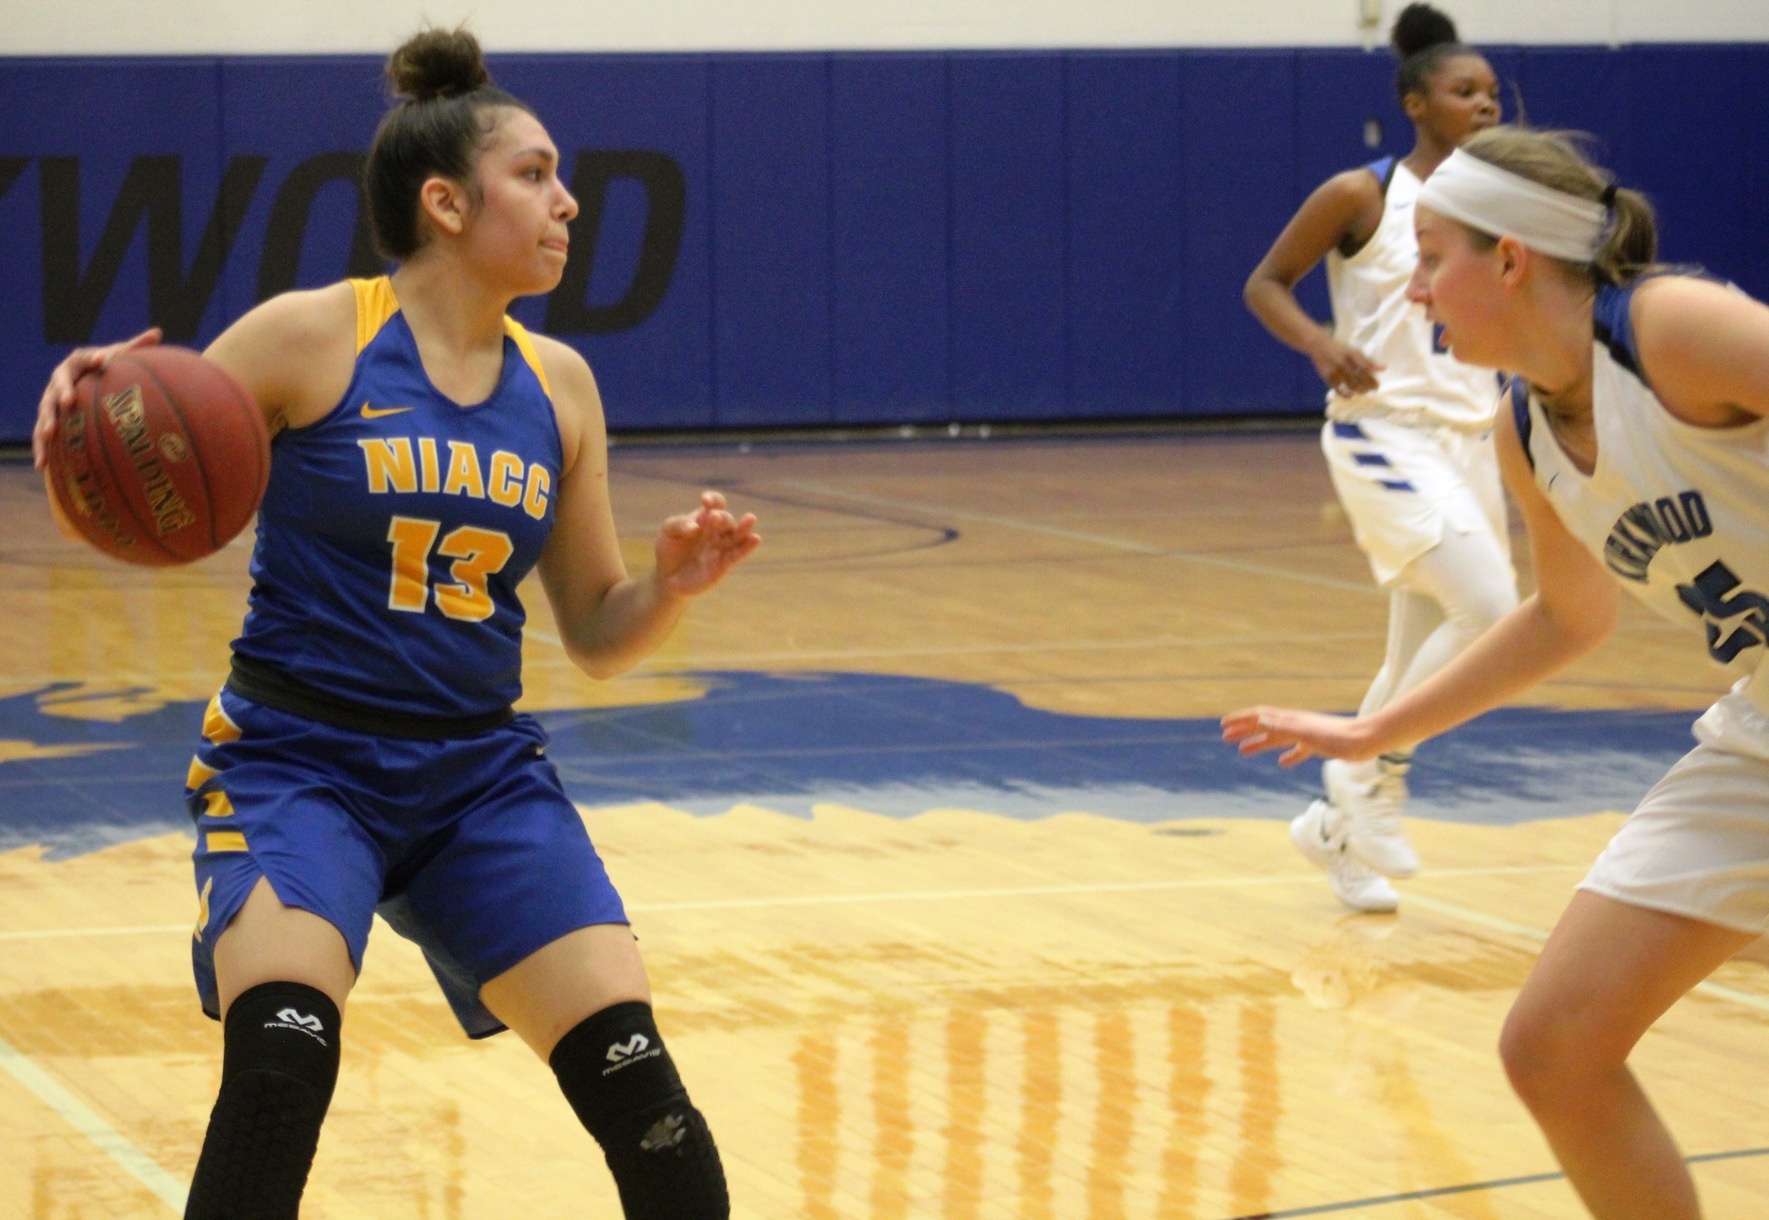 NIACC's Autam Mendez looks to pass the ball in last Saturday's game at Kirkwood.